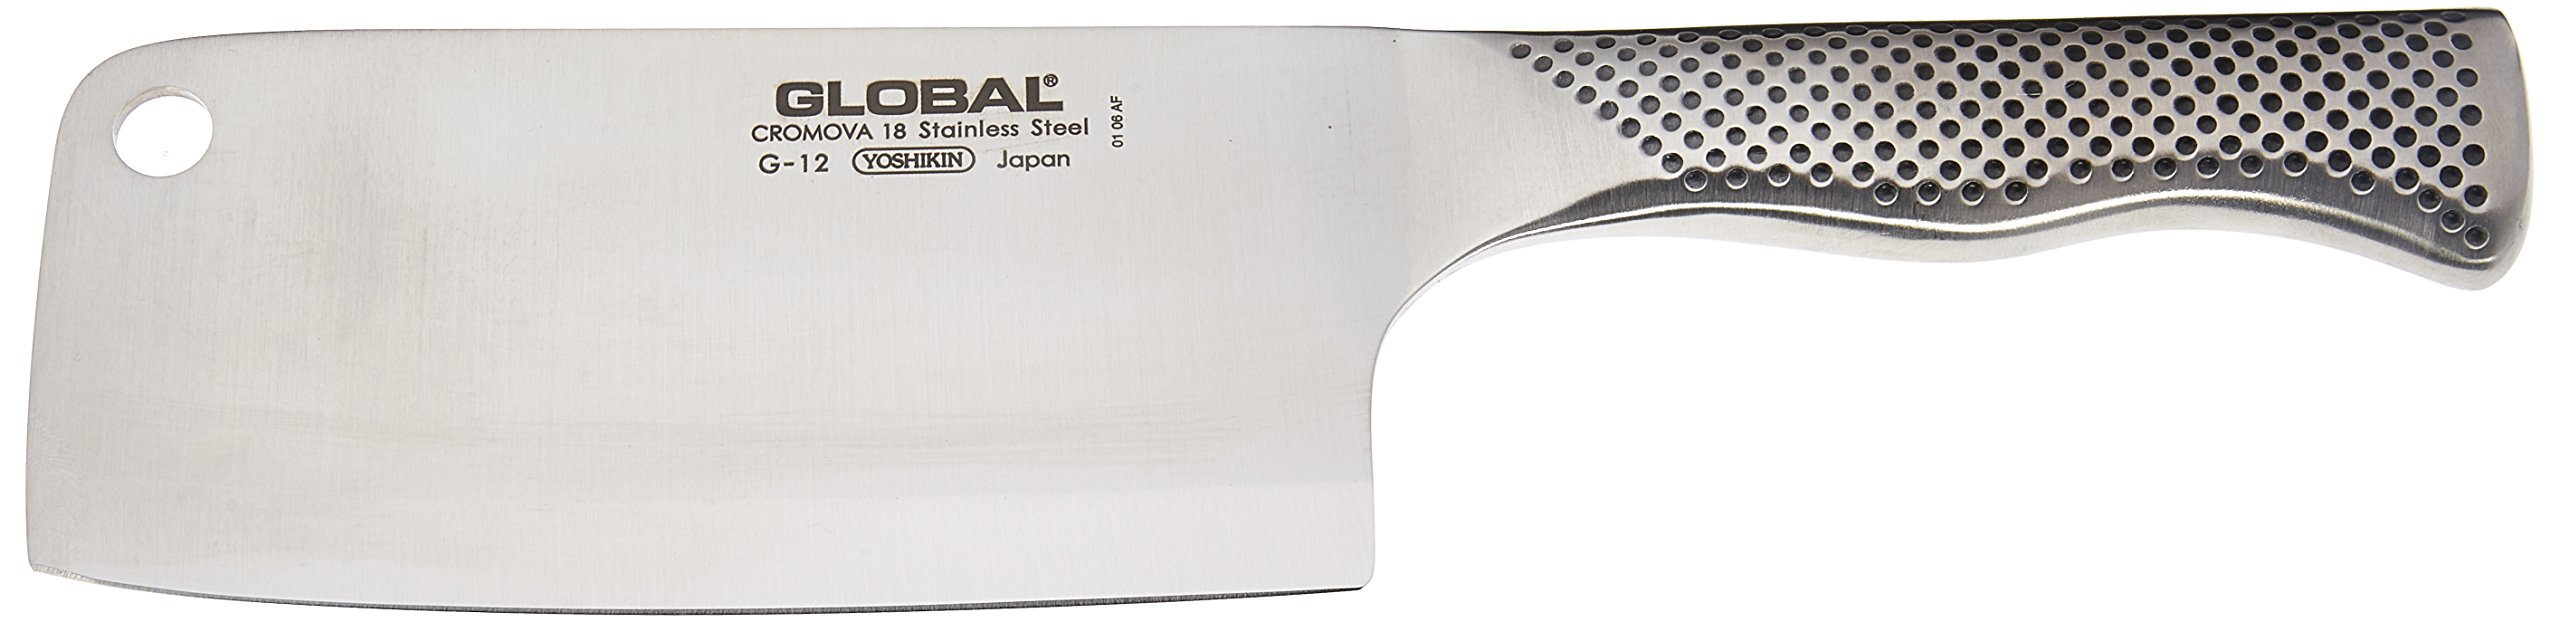 Global 812445 Meat Cleaver 6 1/2'', 16cm Silver